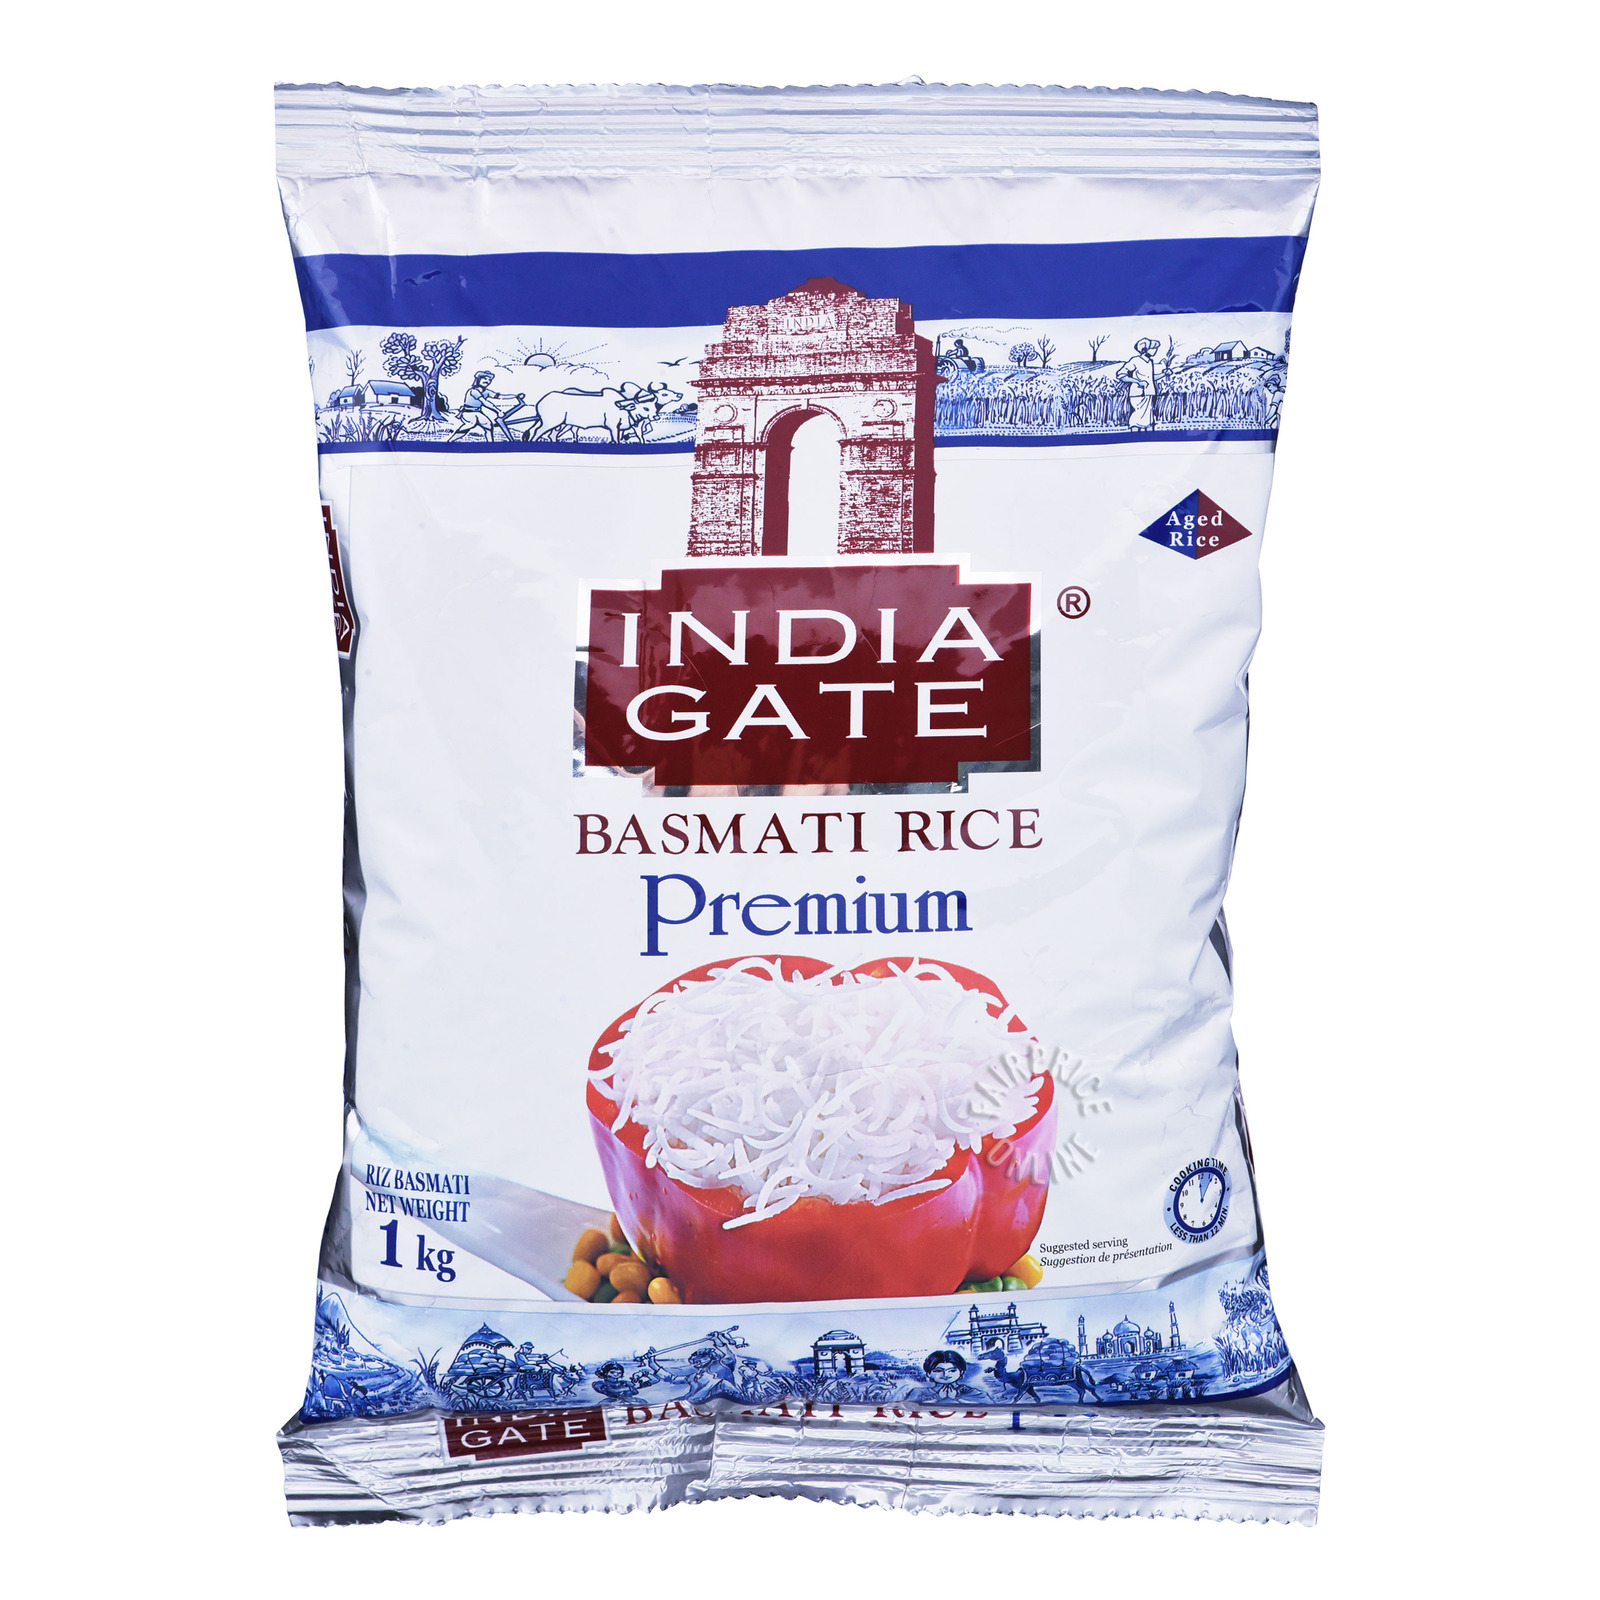 India Gate Basmati Rice - Premium